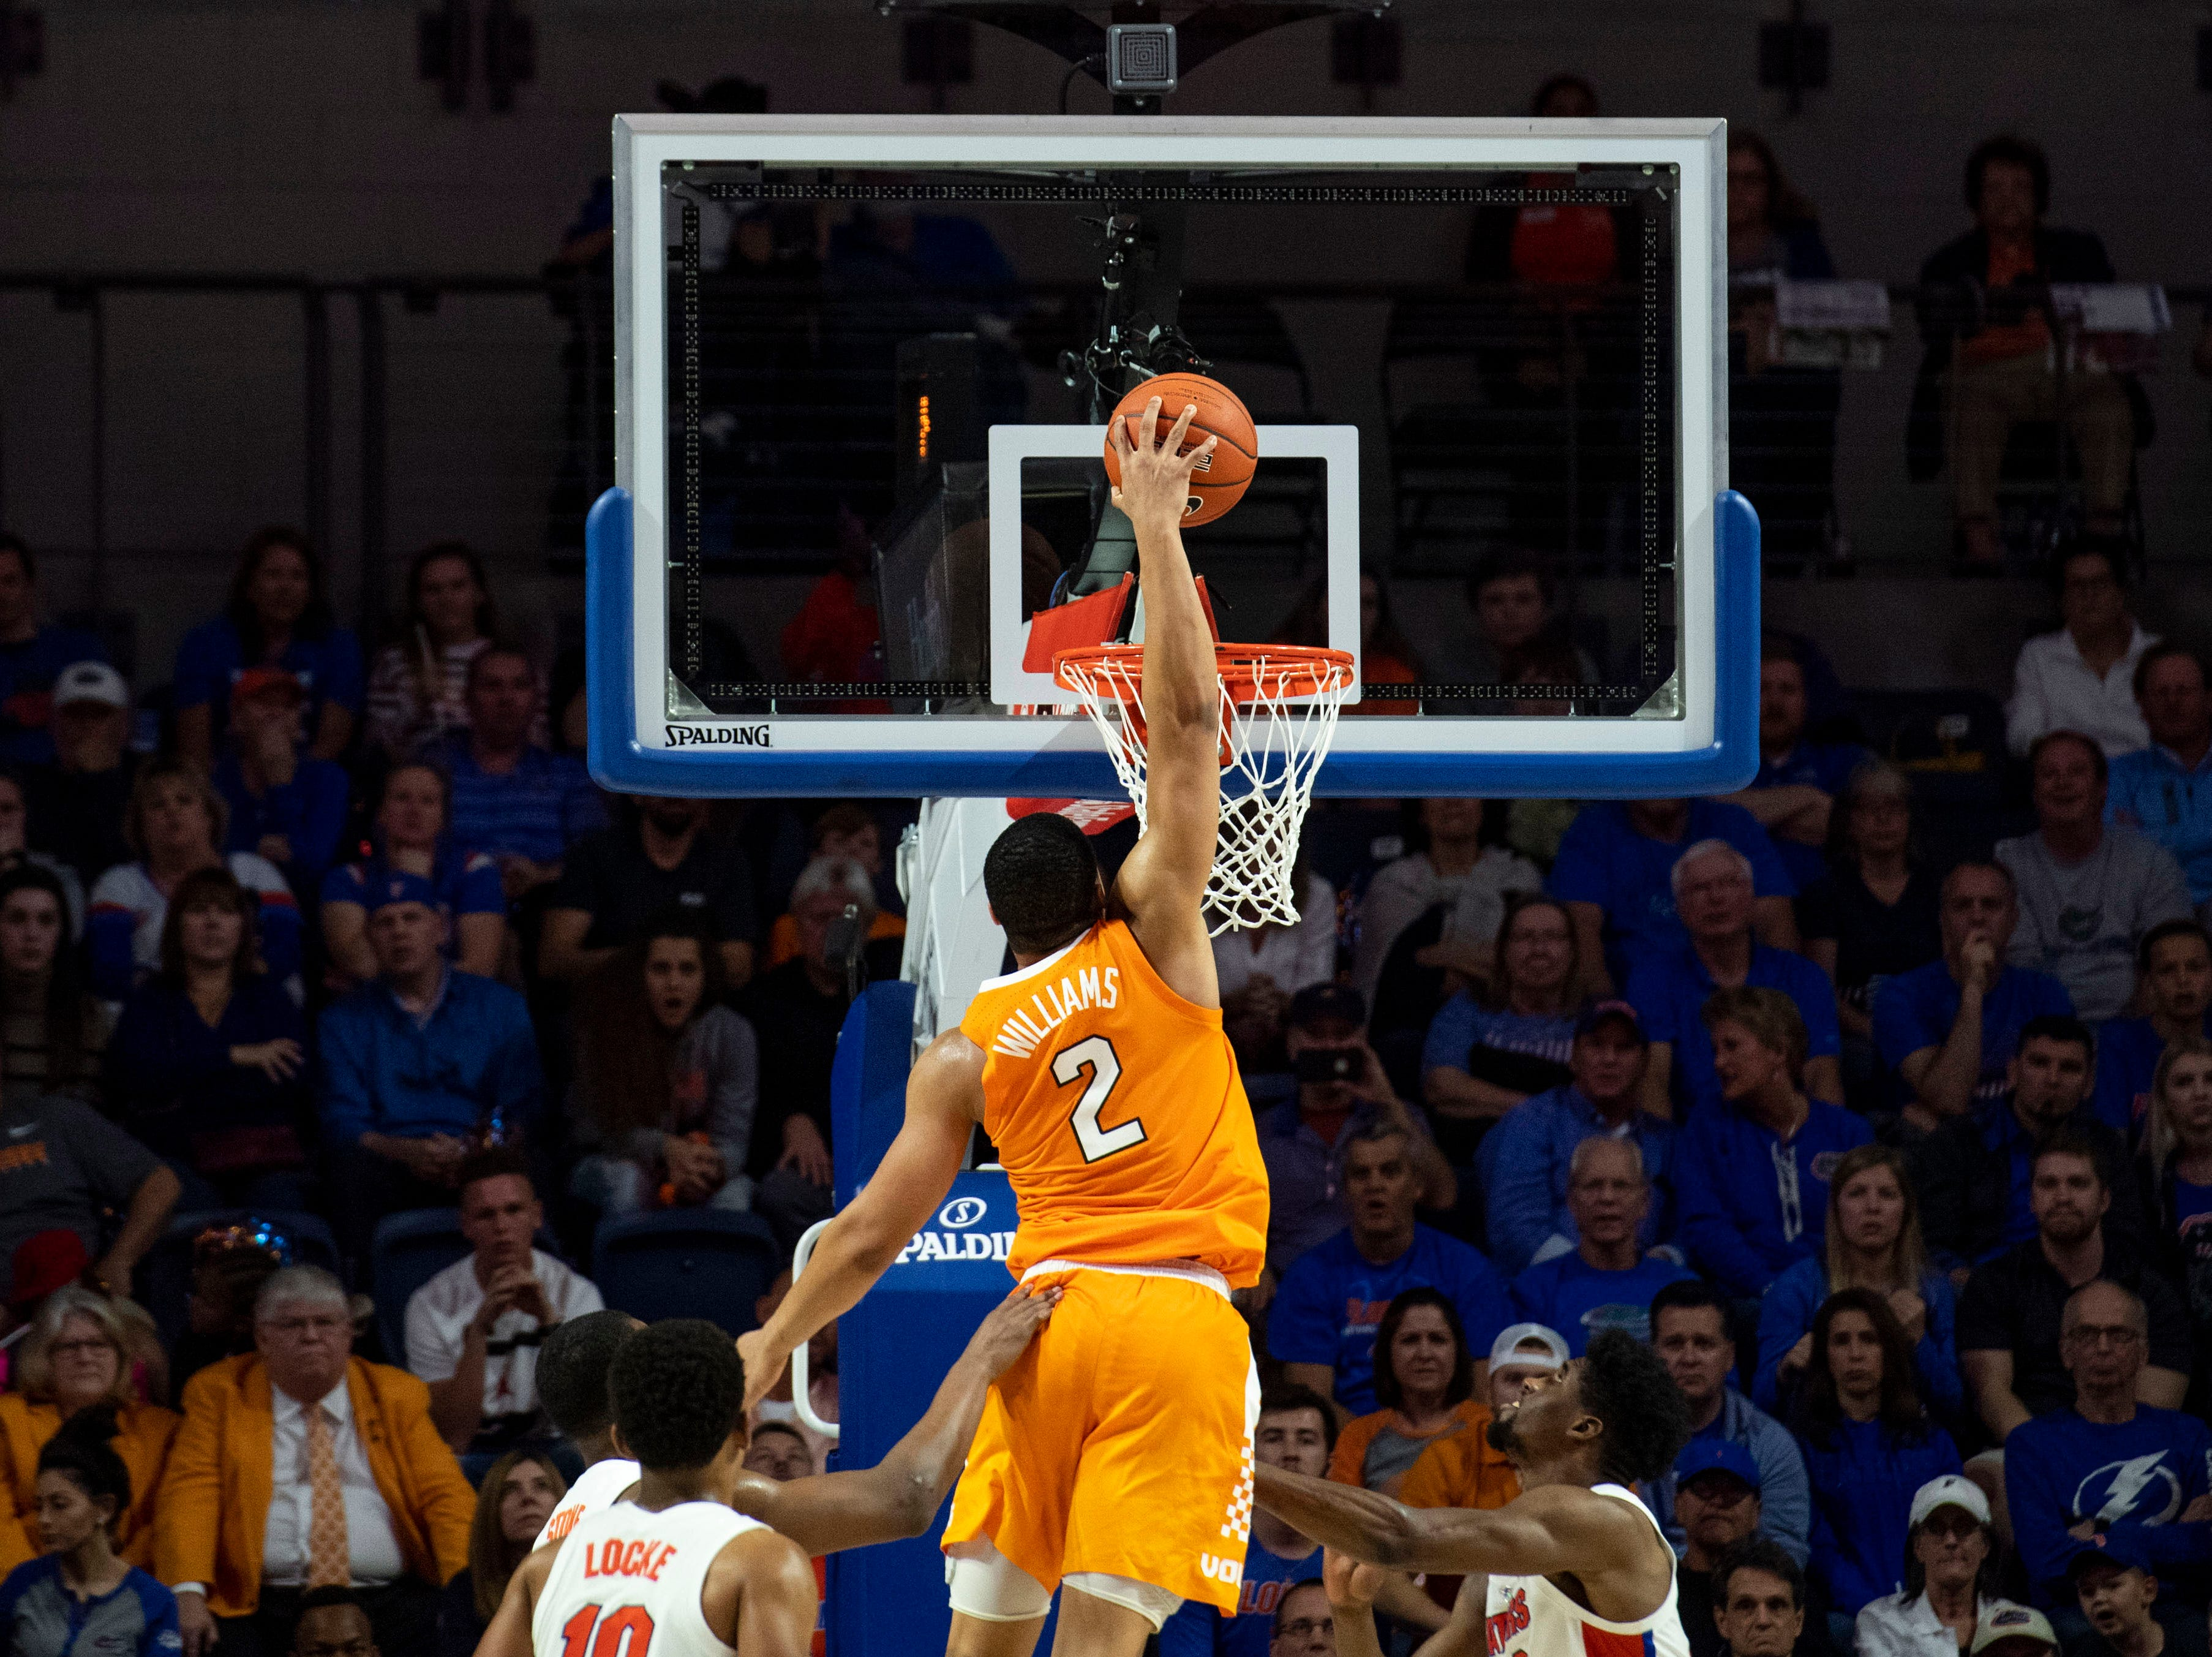 Tennessee Volunteers forward Grant Williams (2) slam dunks the ball during the second half against the Florida Gators on Jan. 12, 2019.